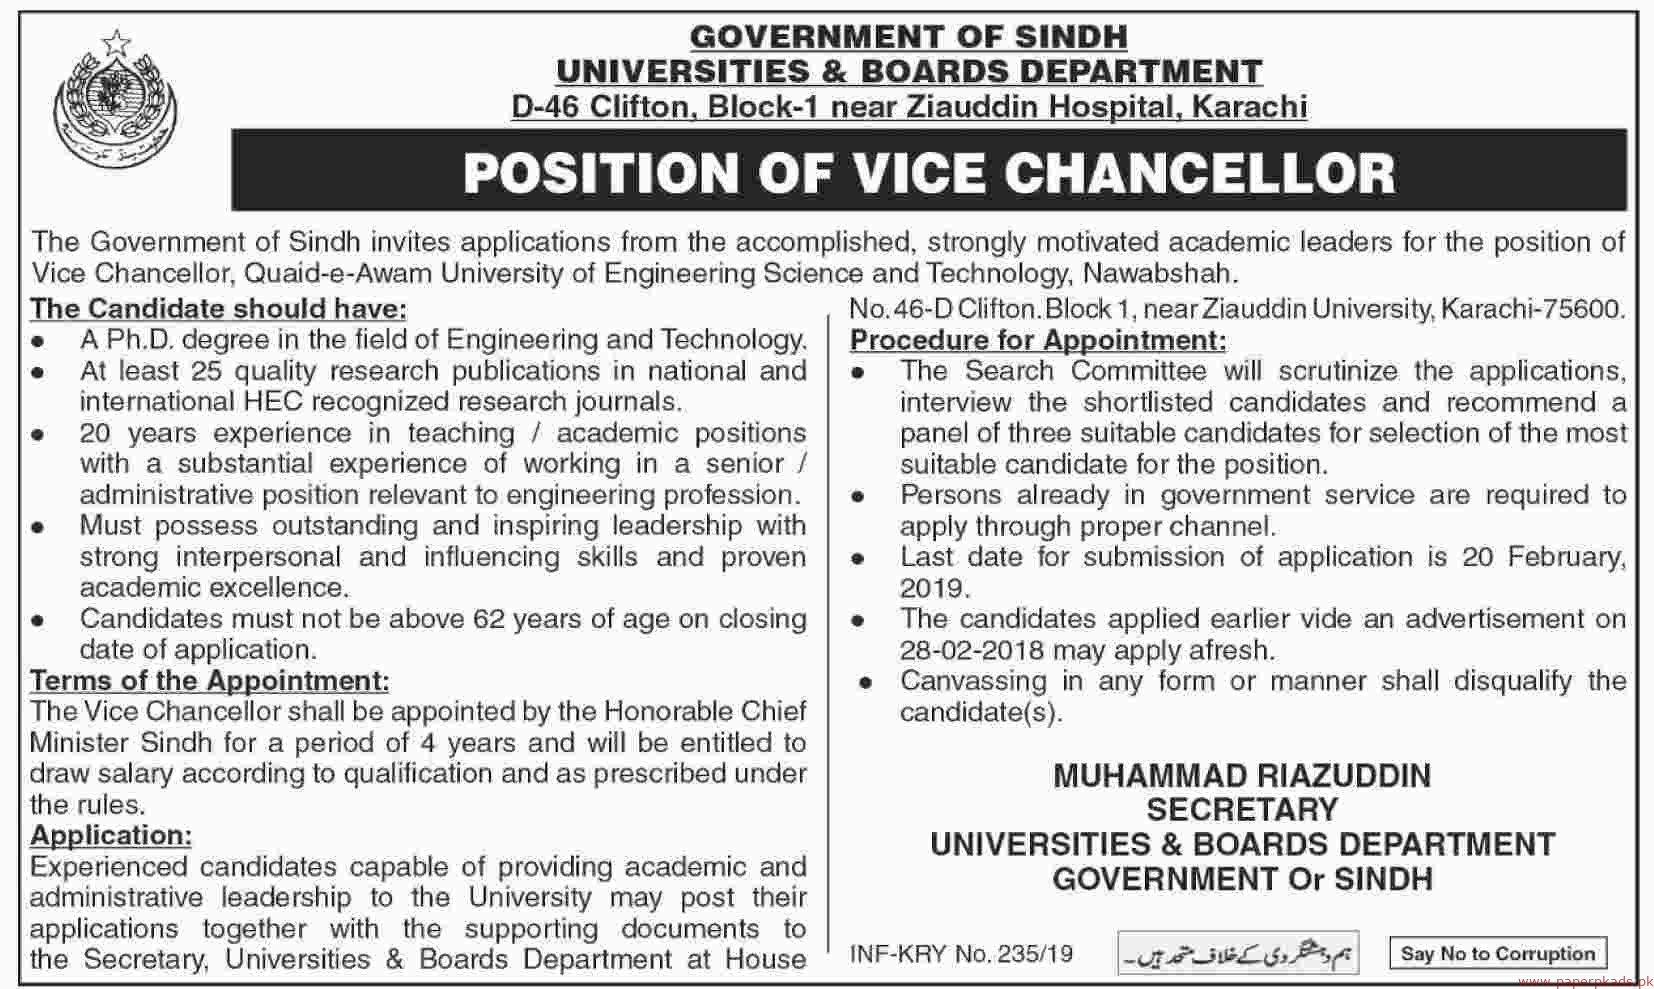 Quaid-e-Awam University of Engineering Science and Technology Nawabhah Jobs 2019 Latest